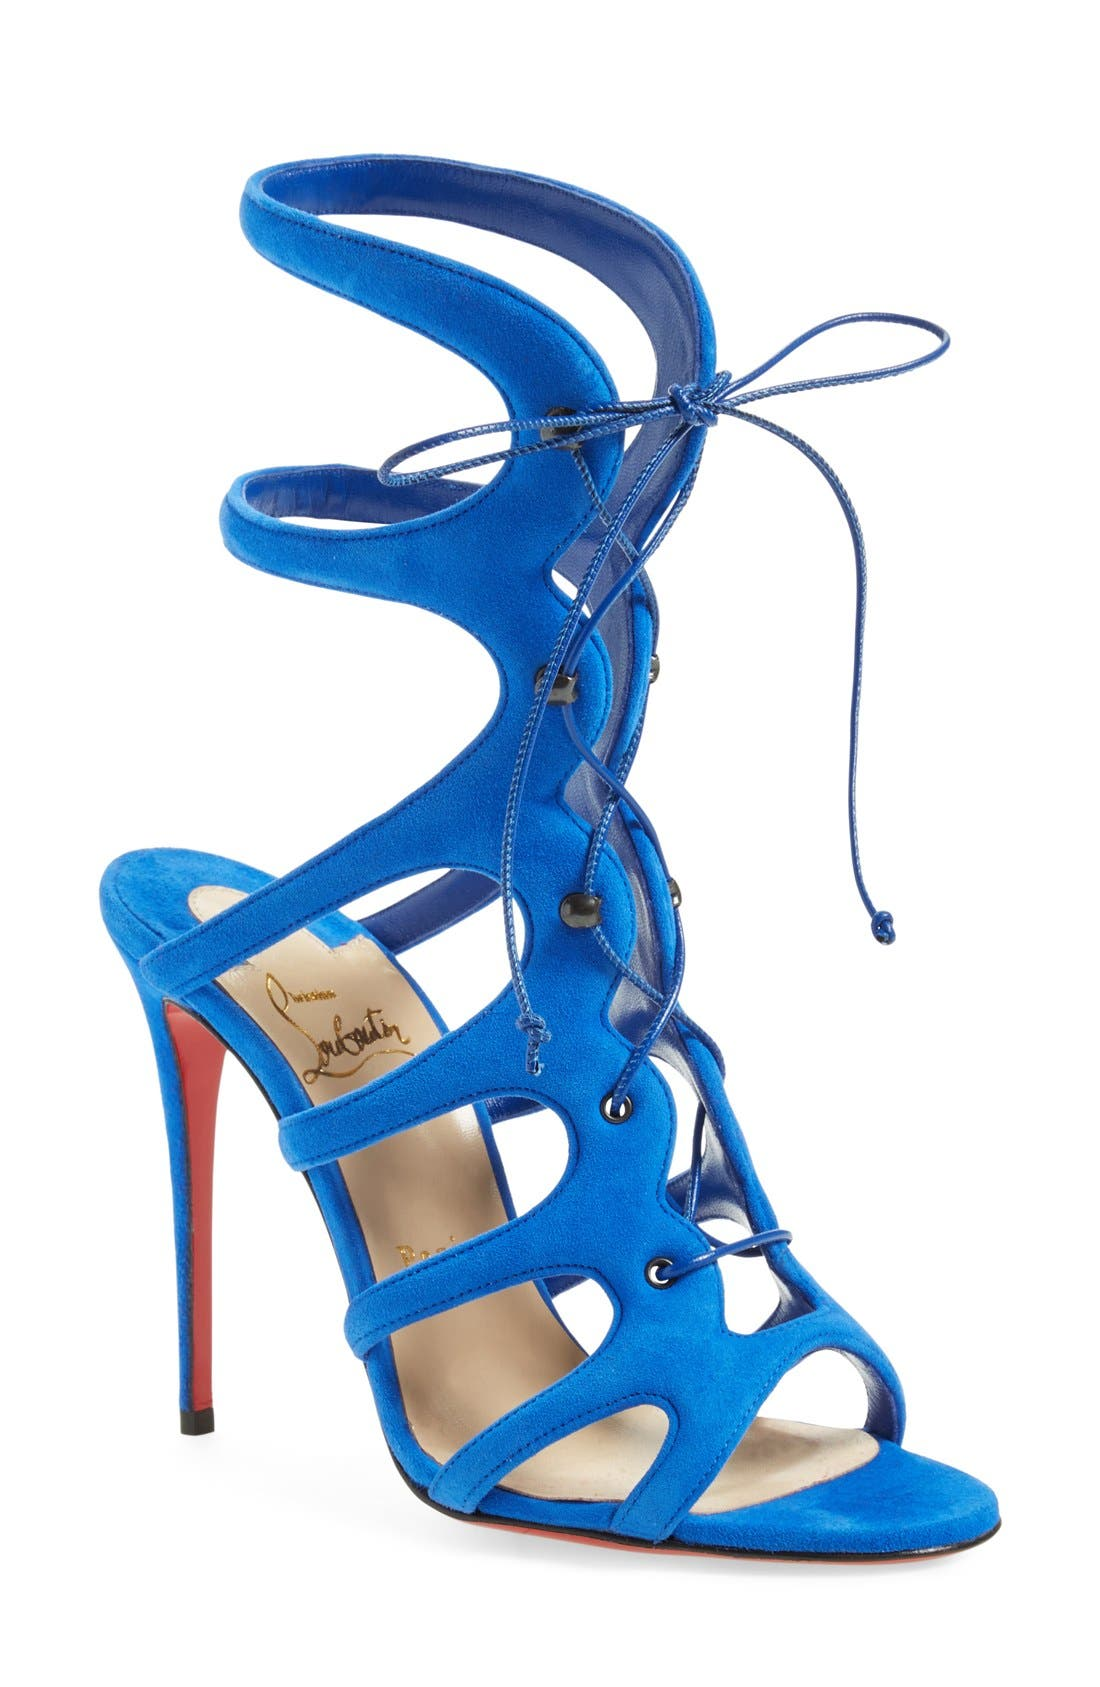 Alternate Image 1 Selected - Christian Louboutin 'Amazoulo' Gladiator Sandal